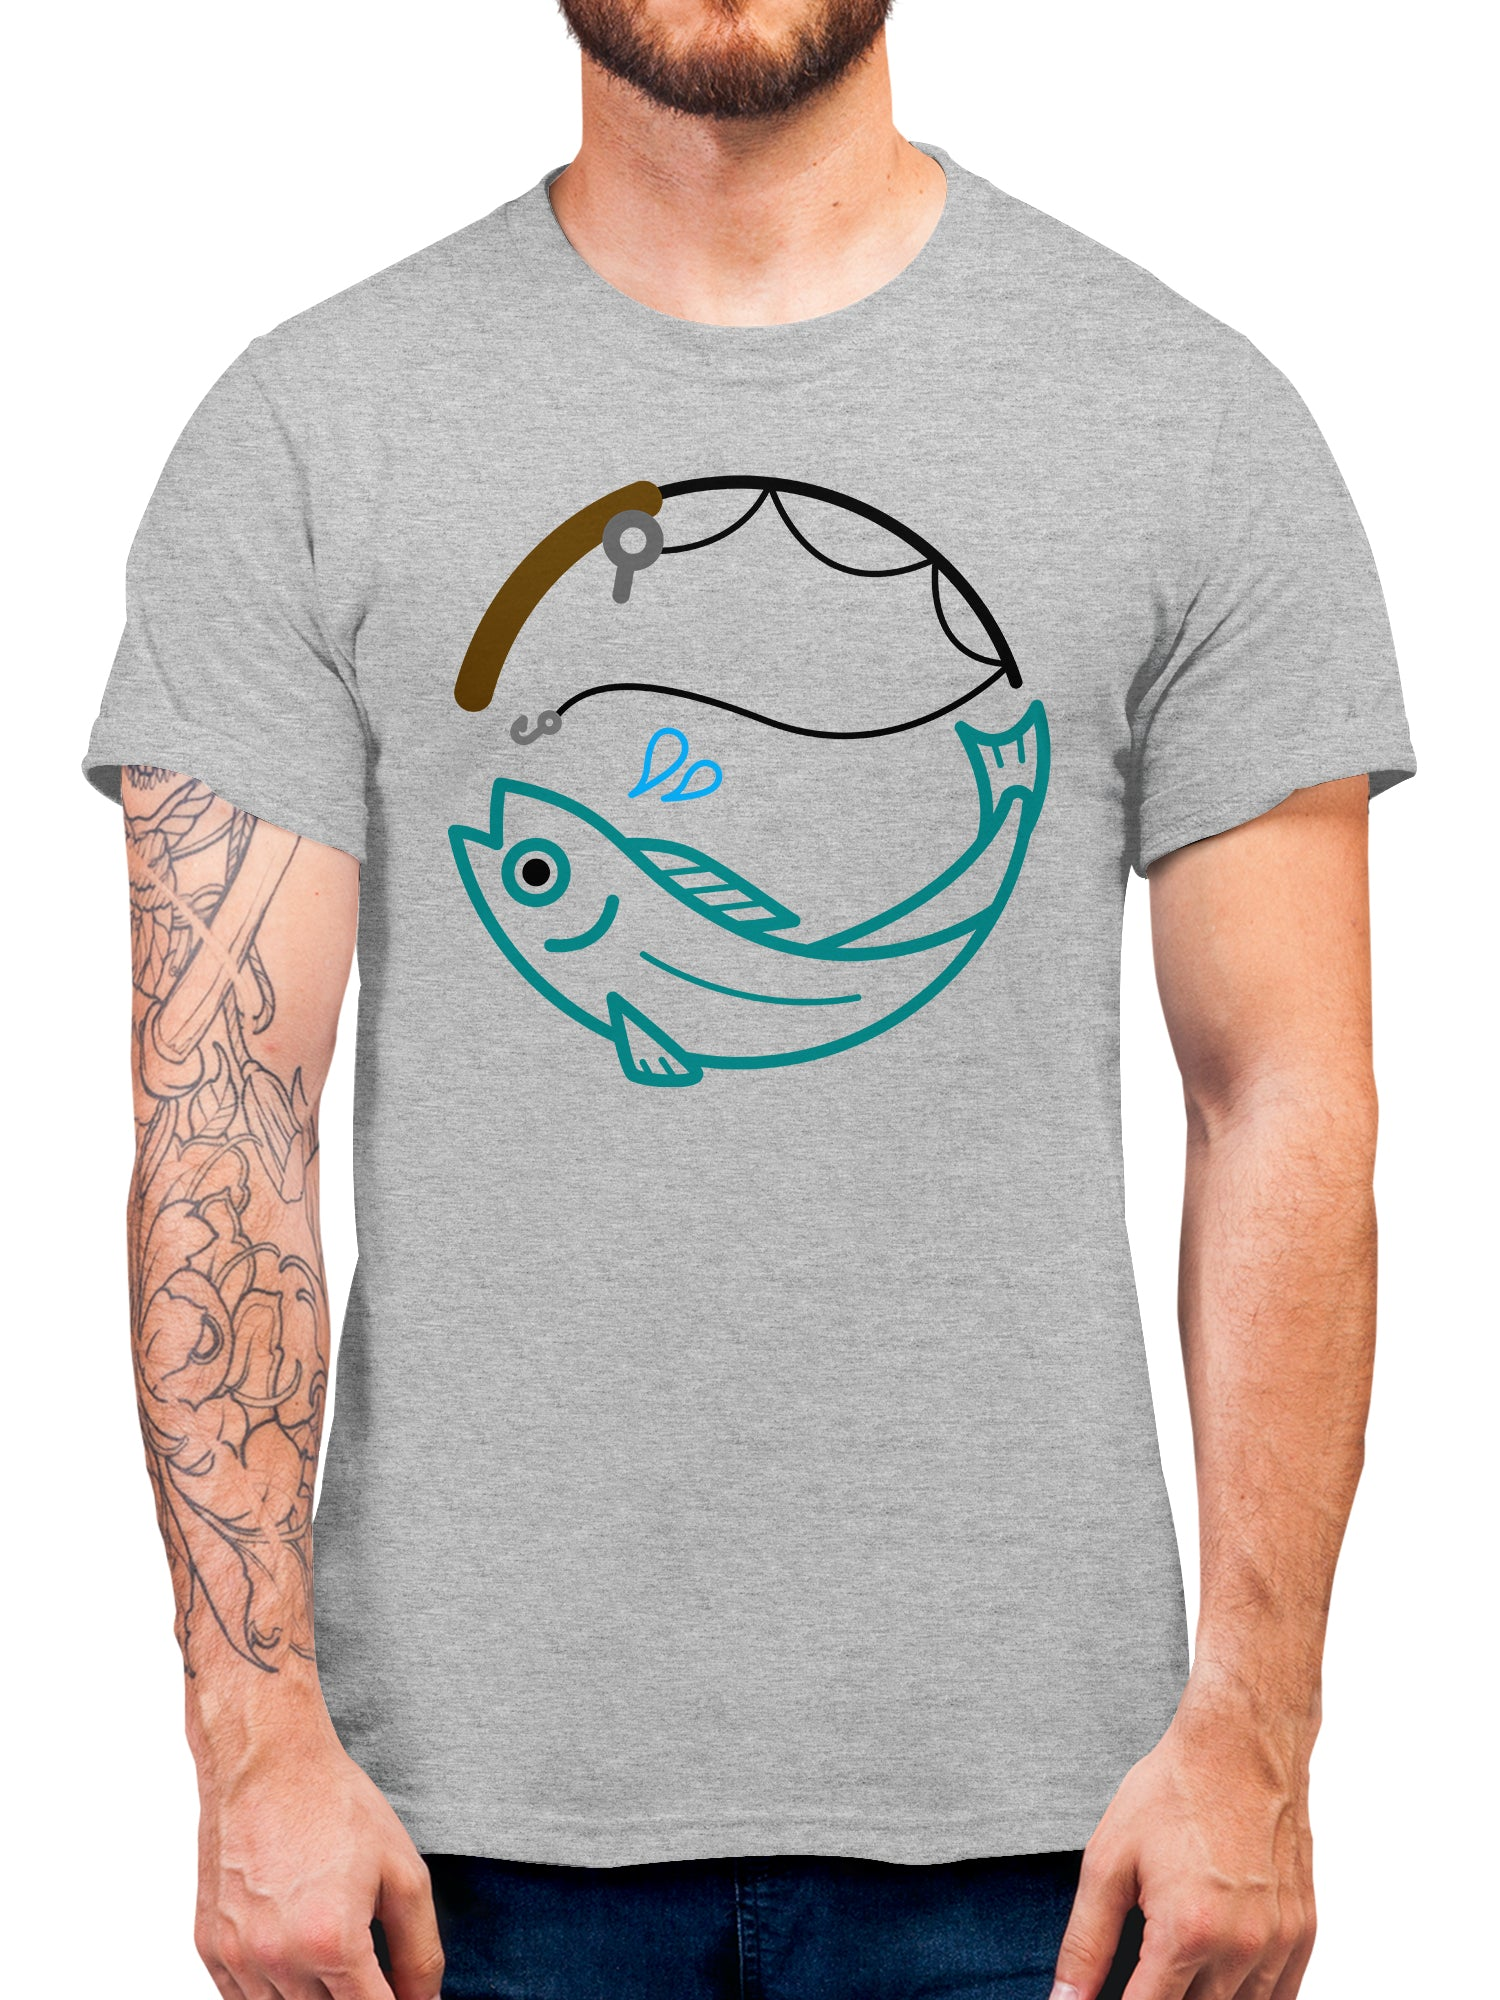 Men/'s Fishing T Shirts Love Fish The perfect gift fathers day birthday T Shirt 2